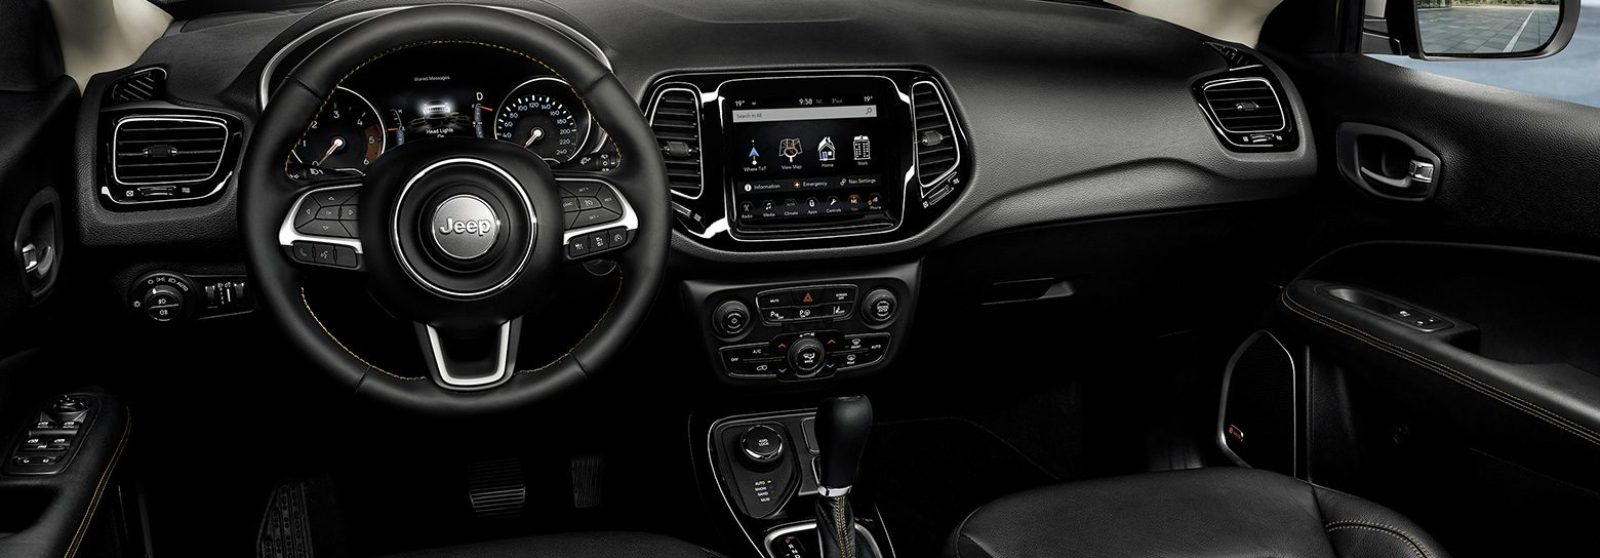 New Jeep Compass Technology In Car Infotainment Jeep Uk